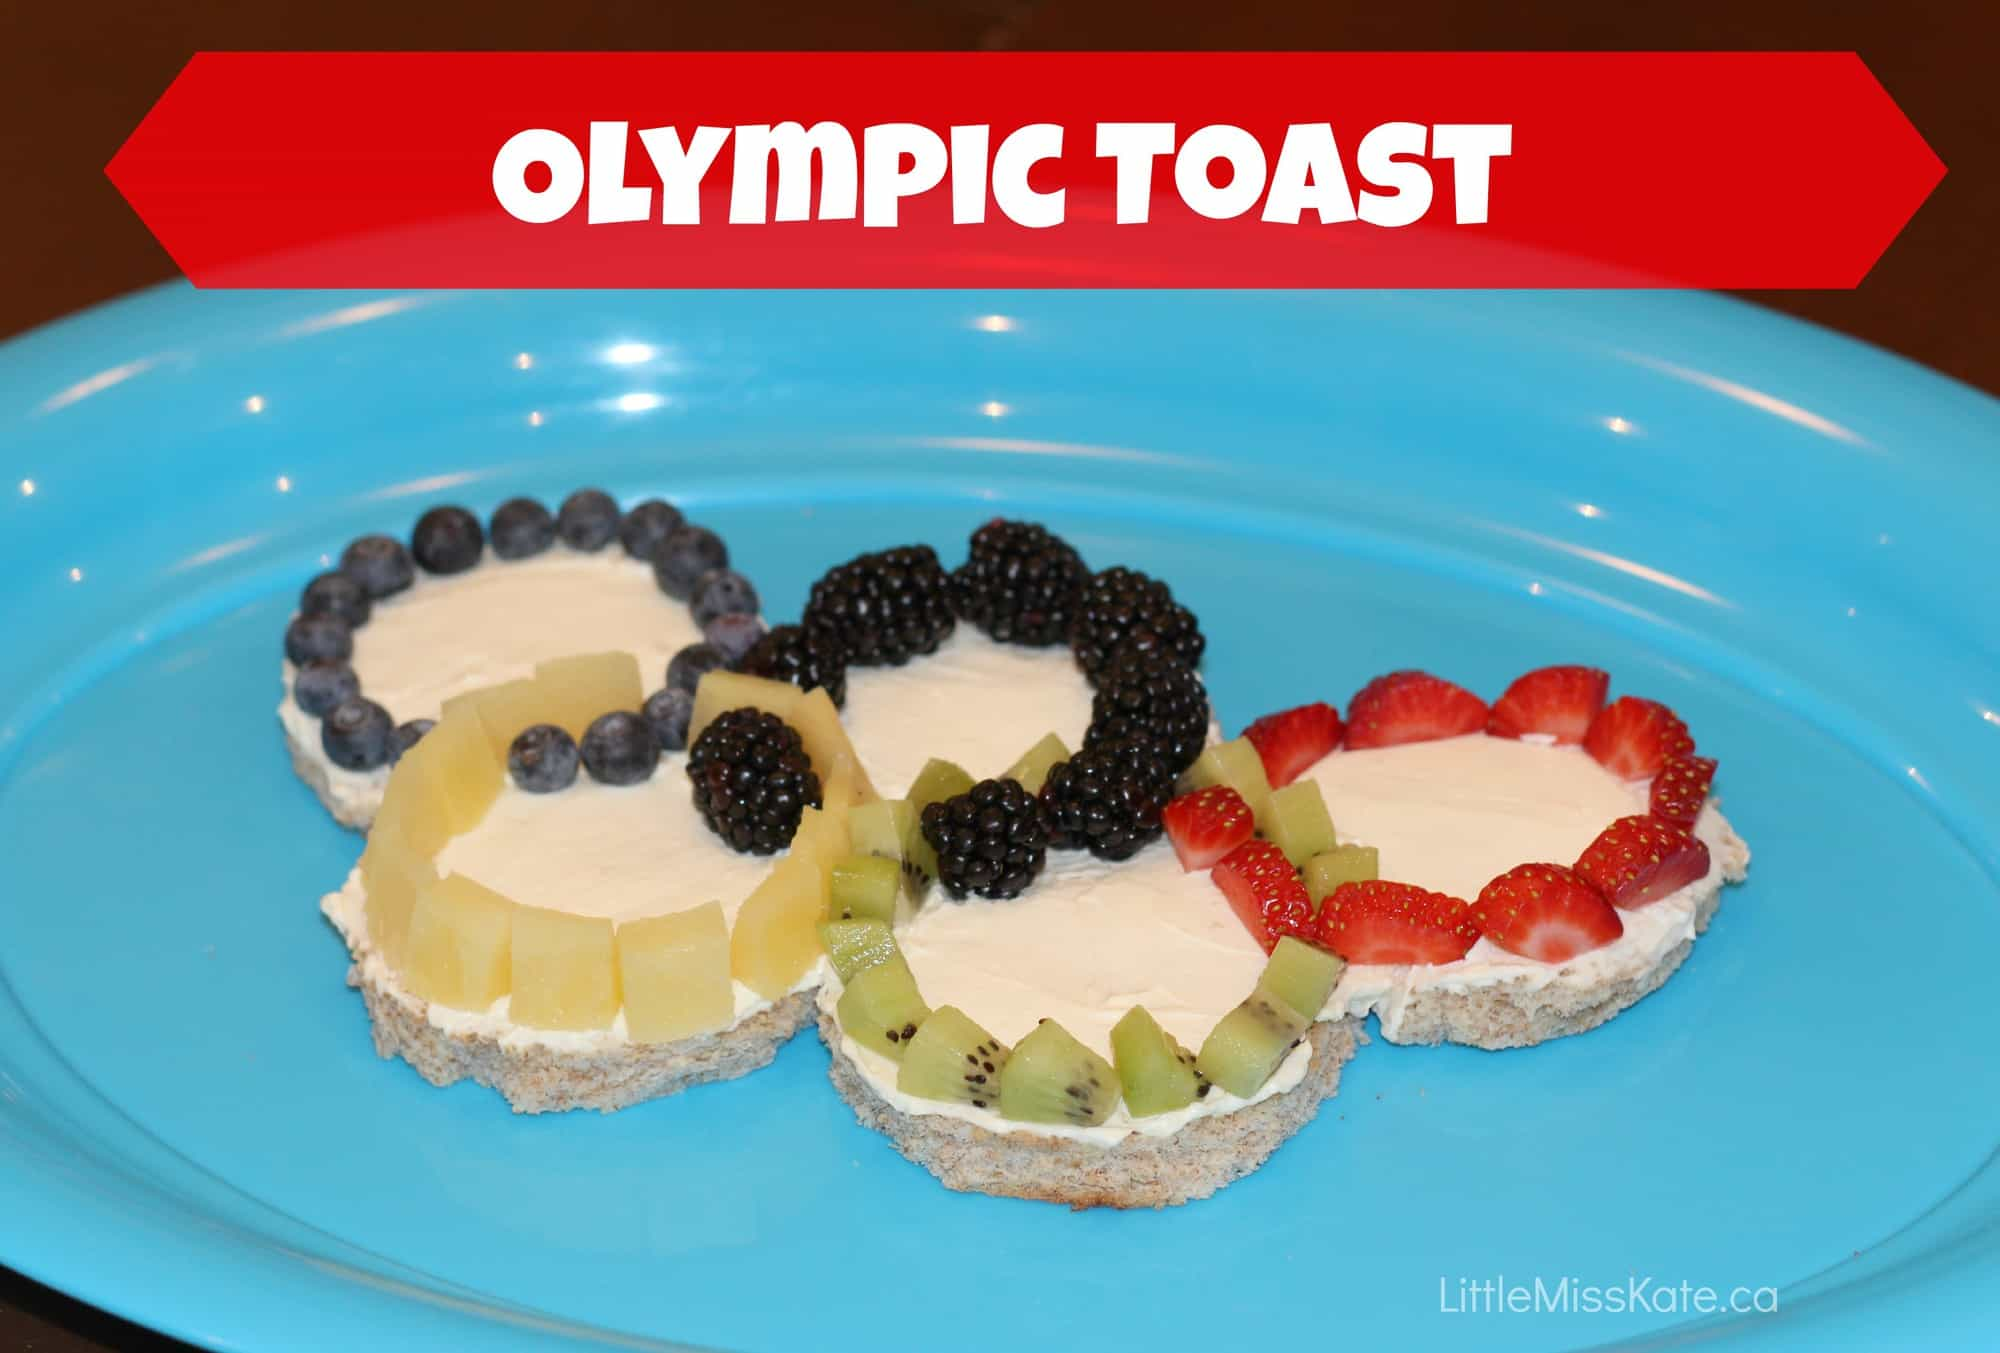 olympic party food ideas - olympic toast via LittleMissKate.ca